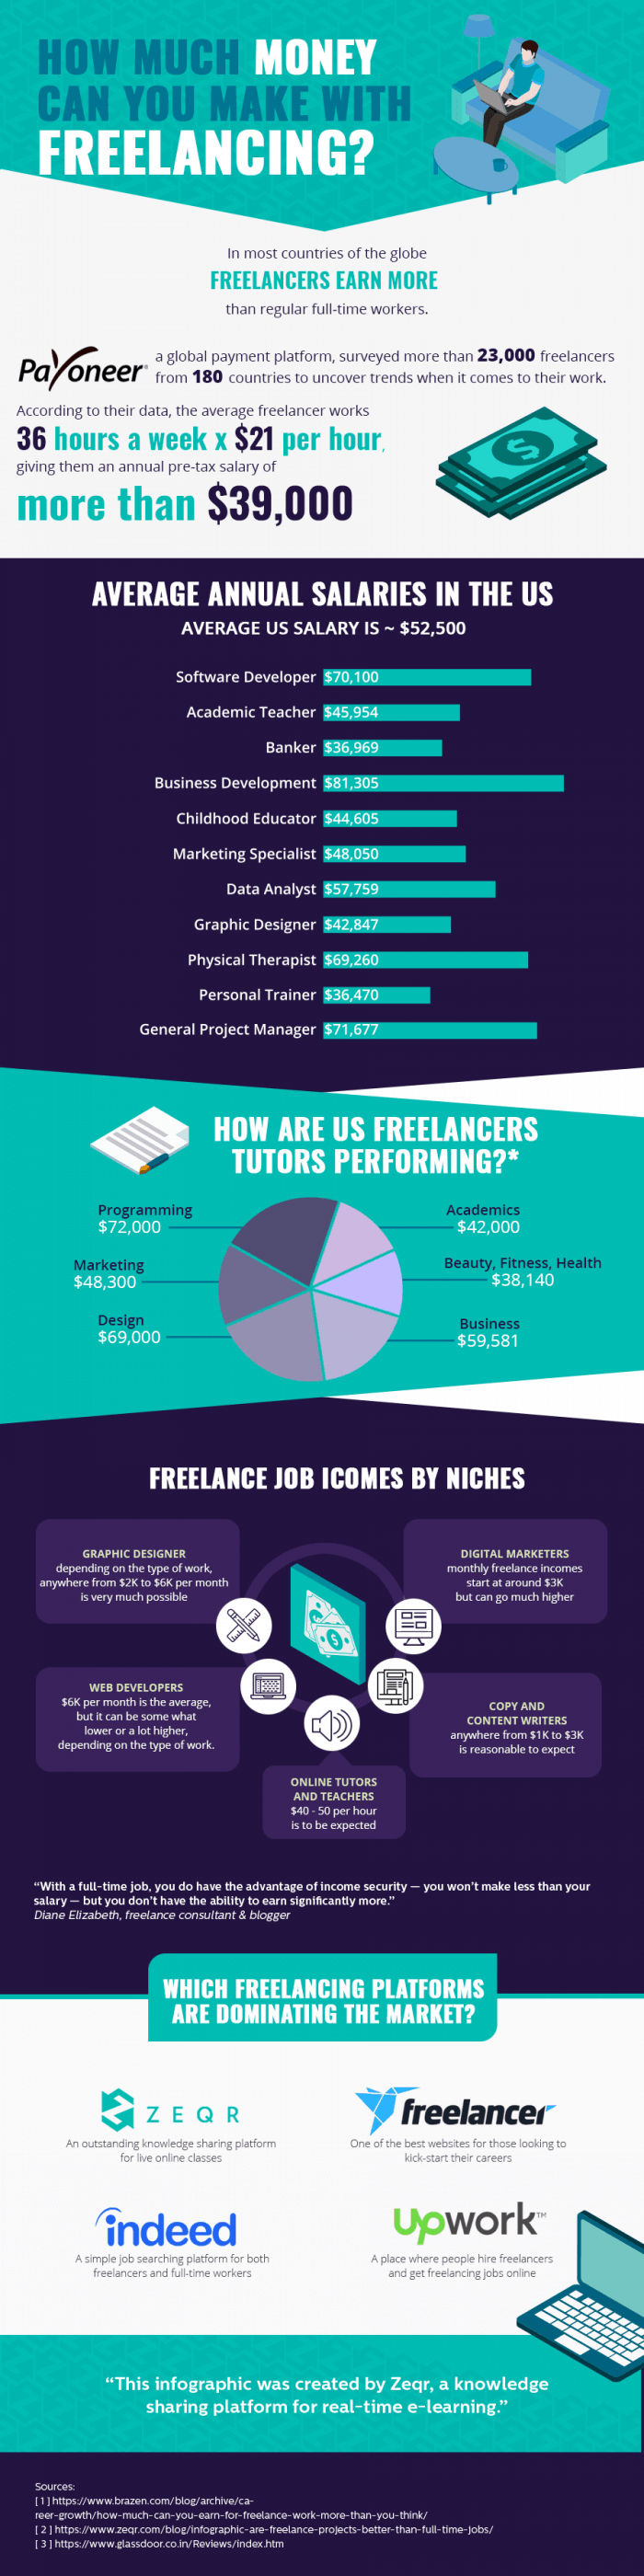 how much money can you earn on social security the truth about freelancer s income daily infographic 2180